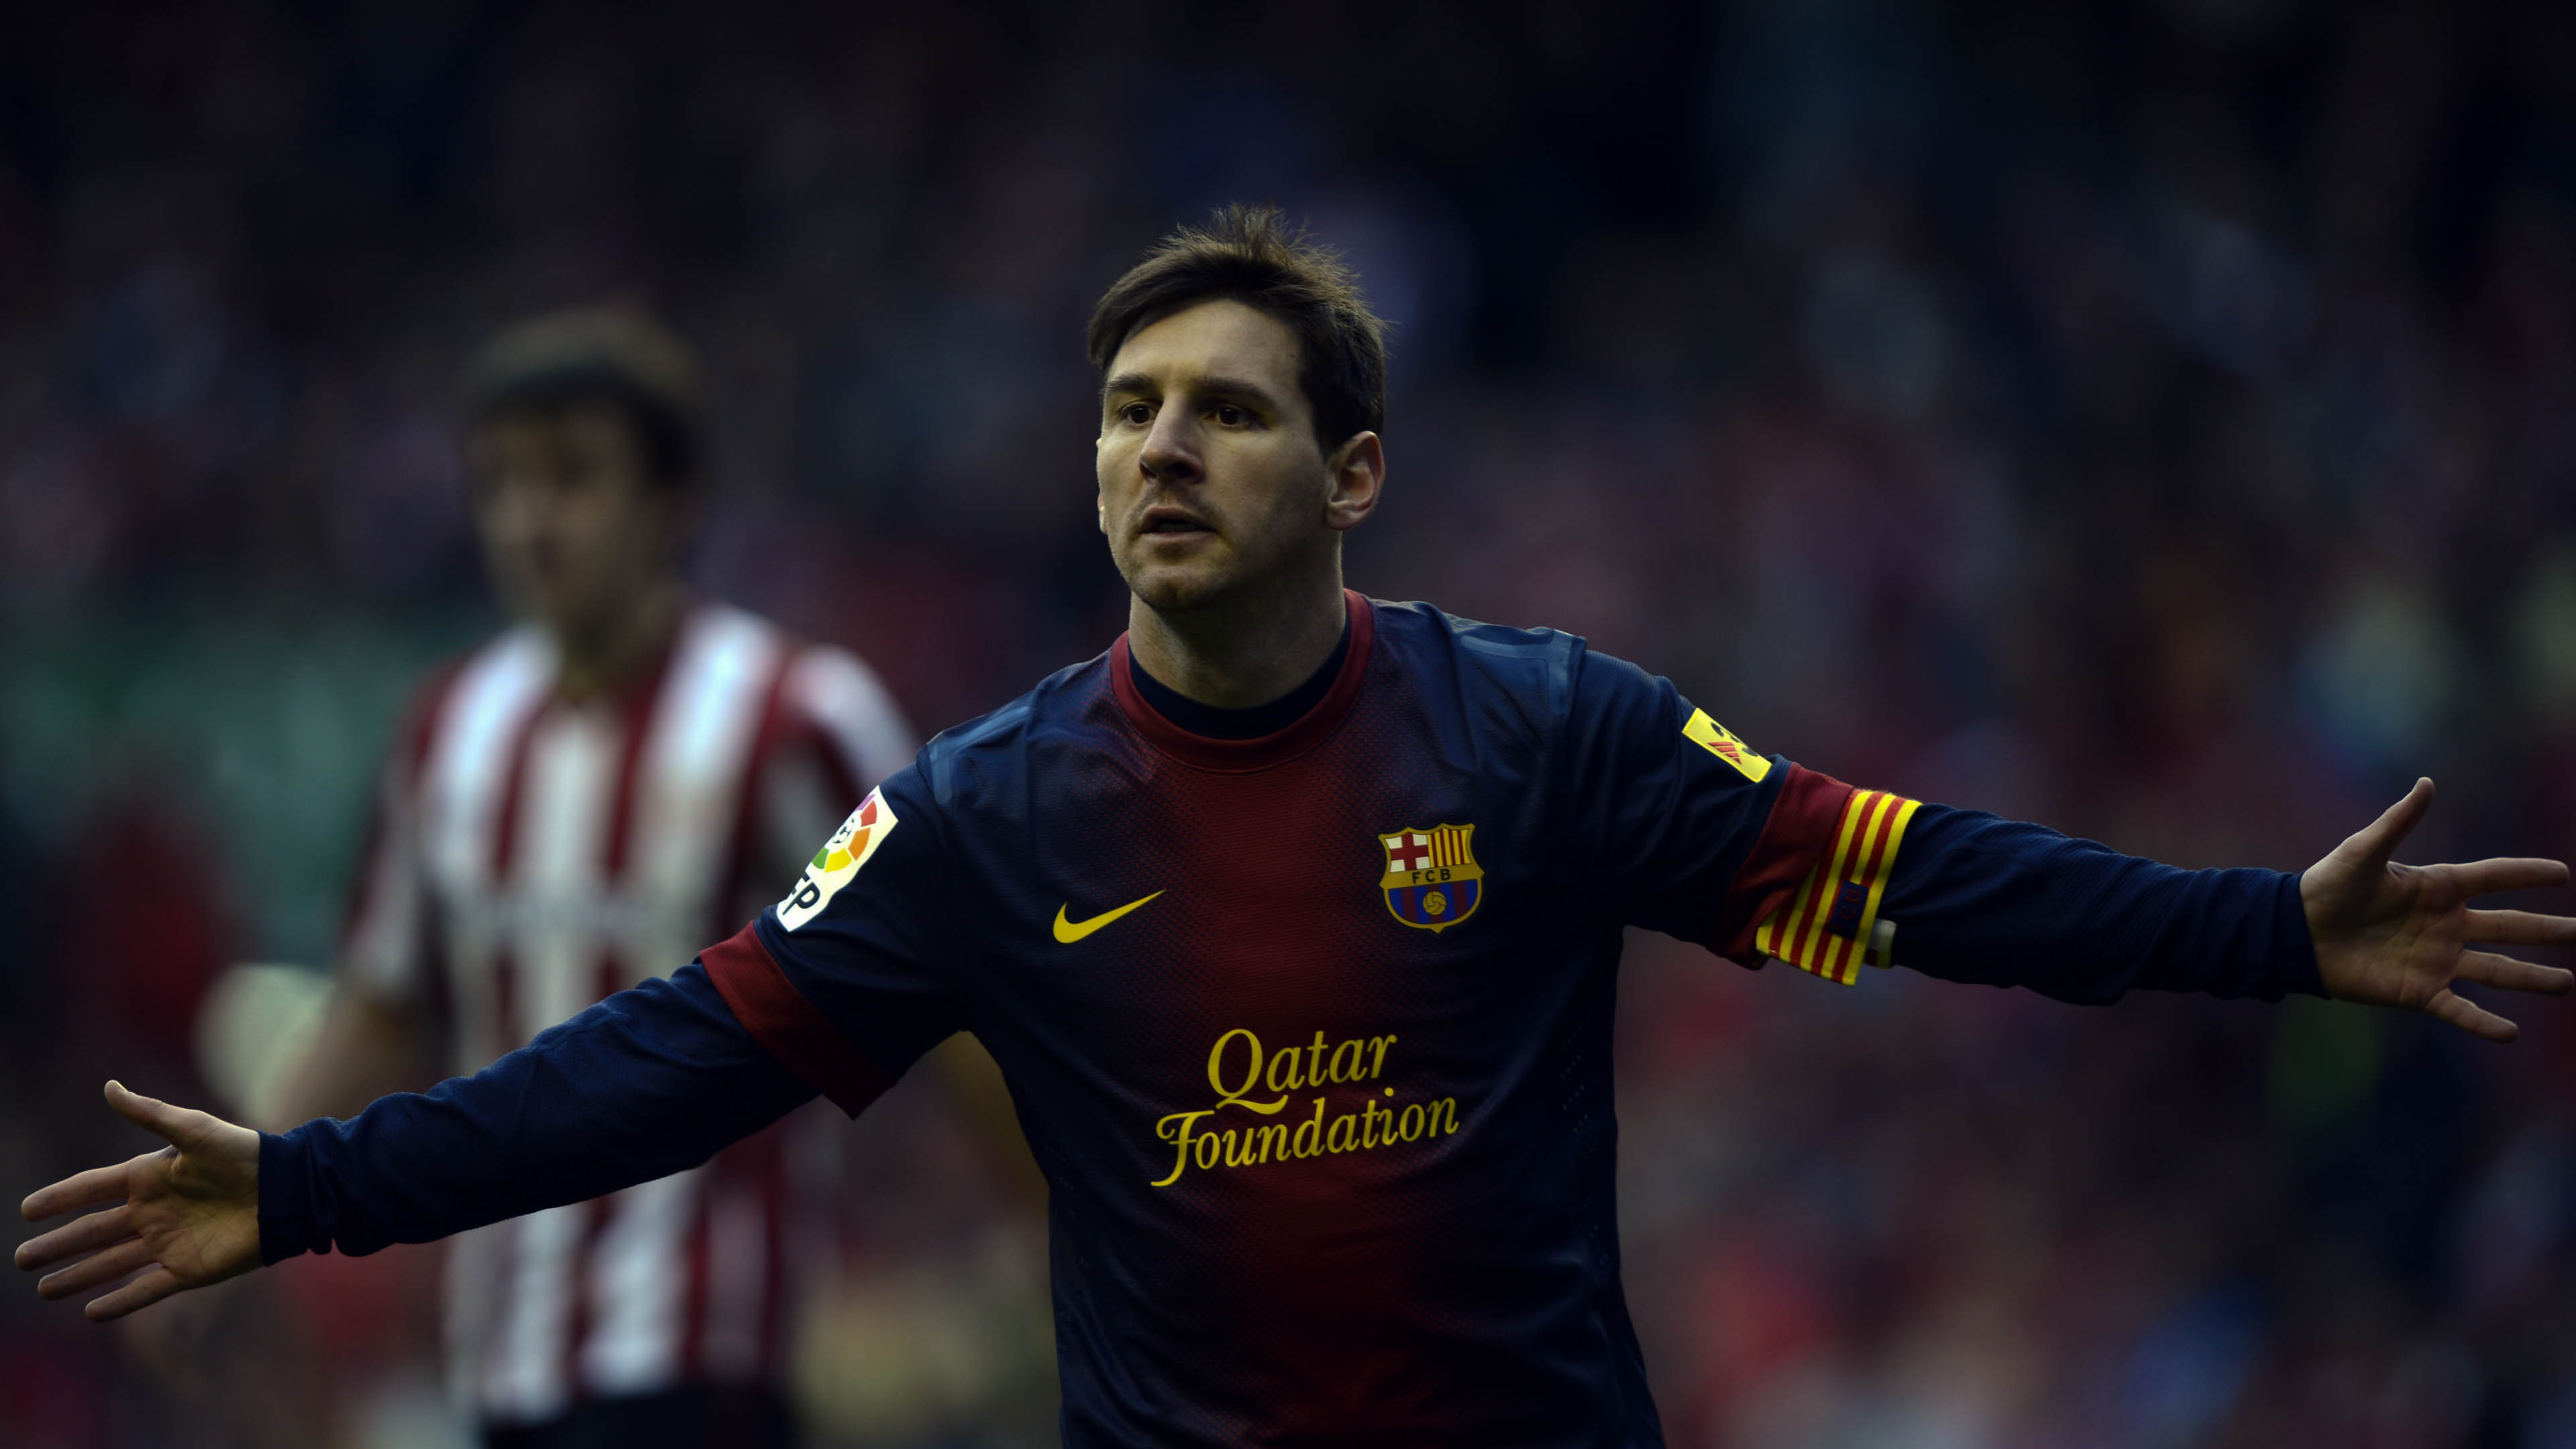 Lionel Messi Beautiful Hd Wallpapers High Definition All Hd